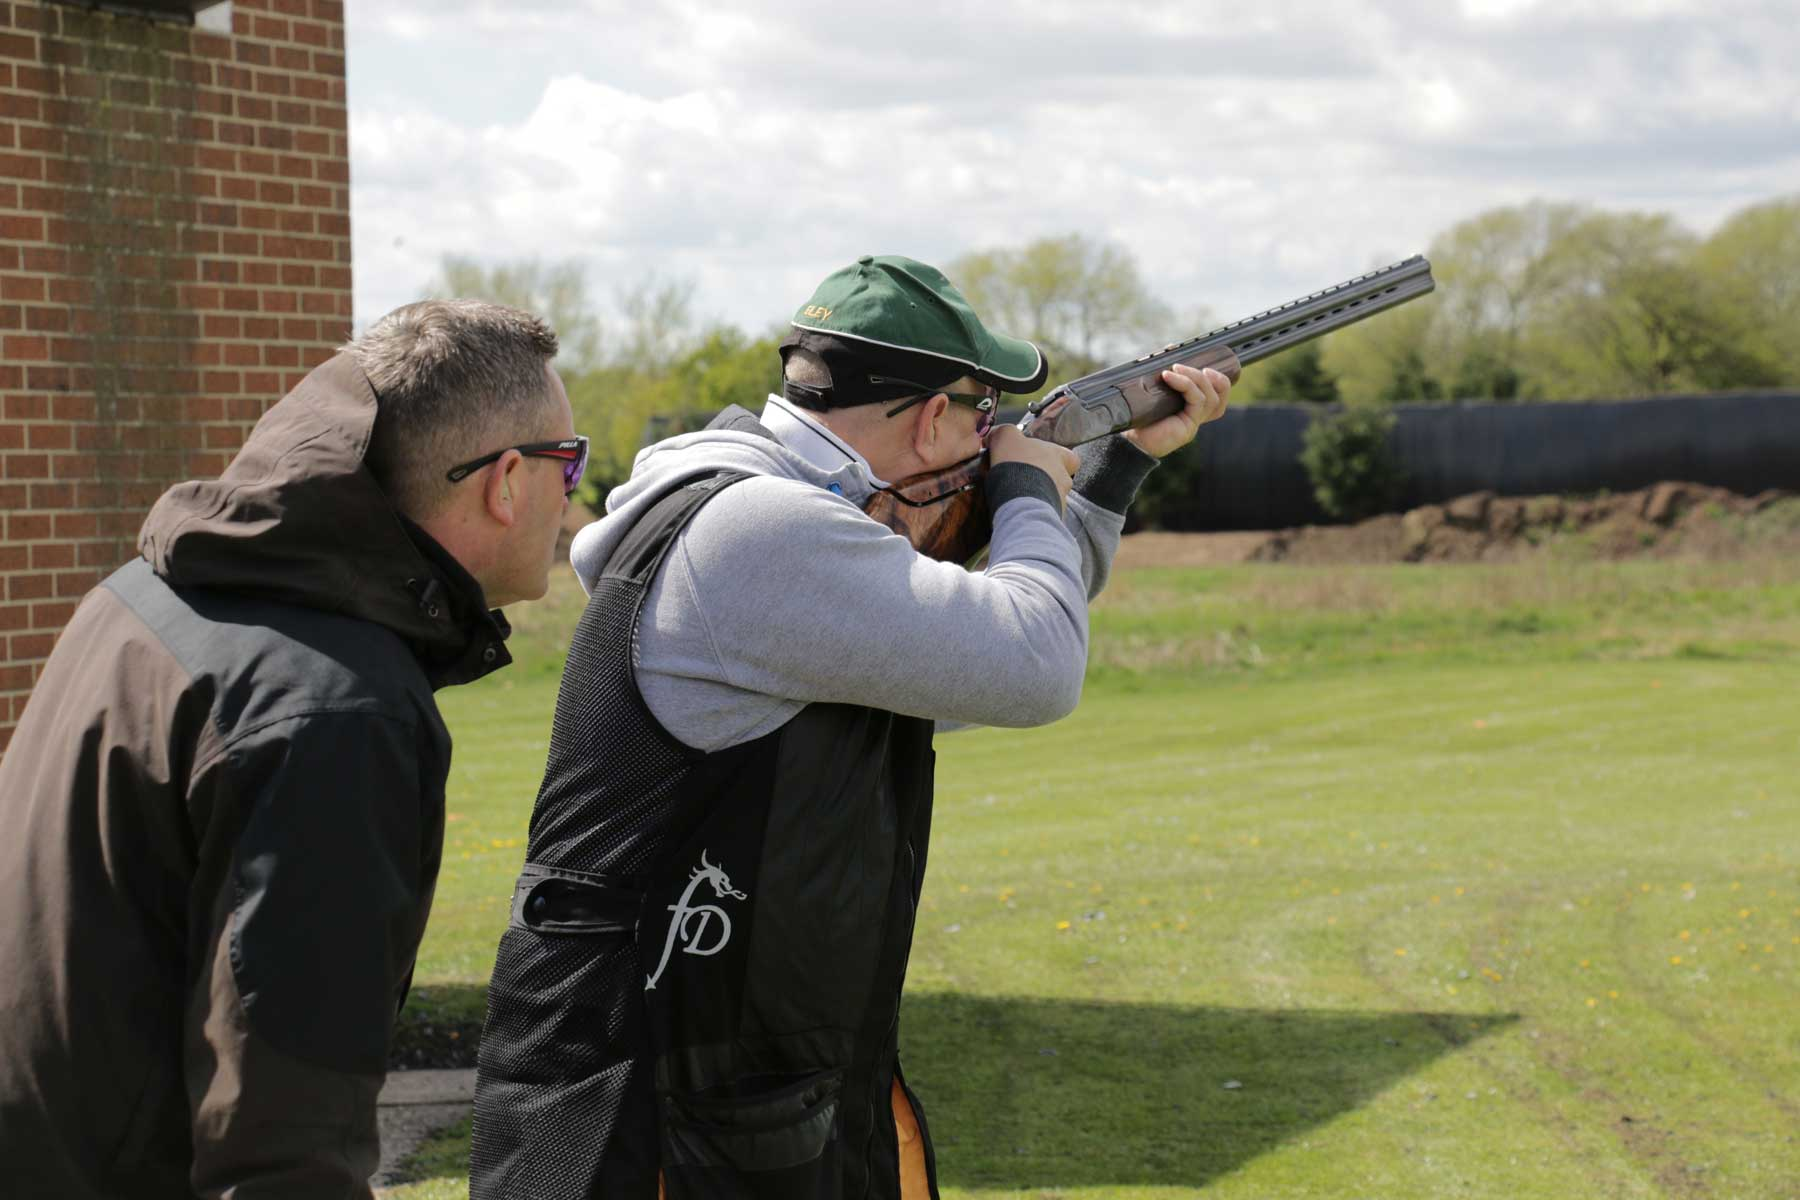 David Beardsmore and a client during a skeet shooting lesson